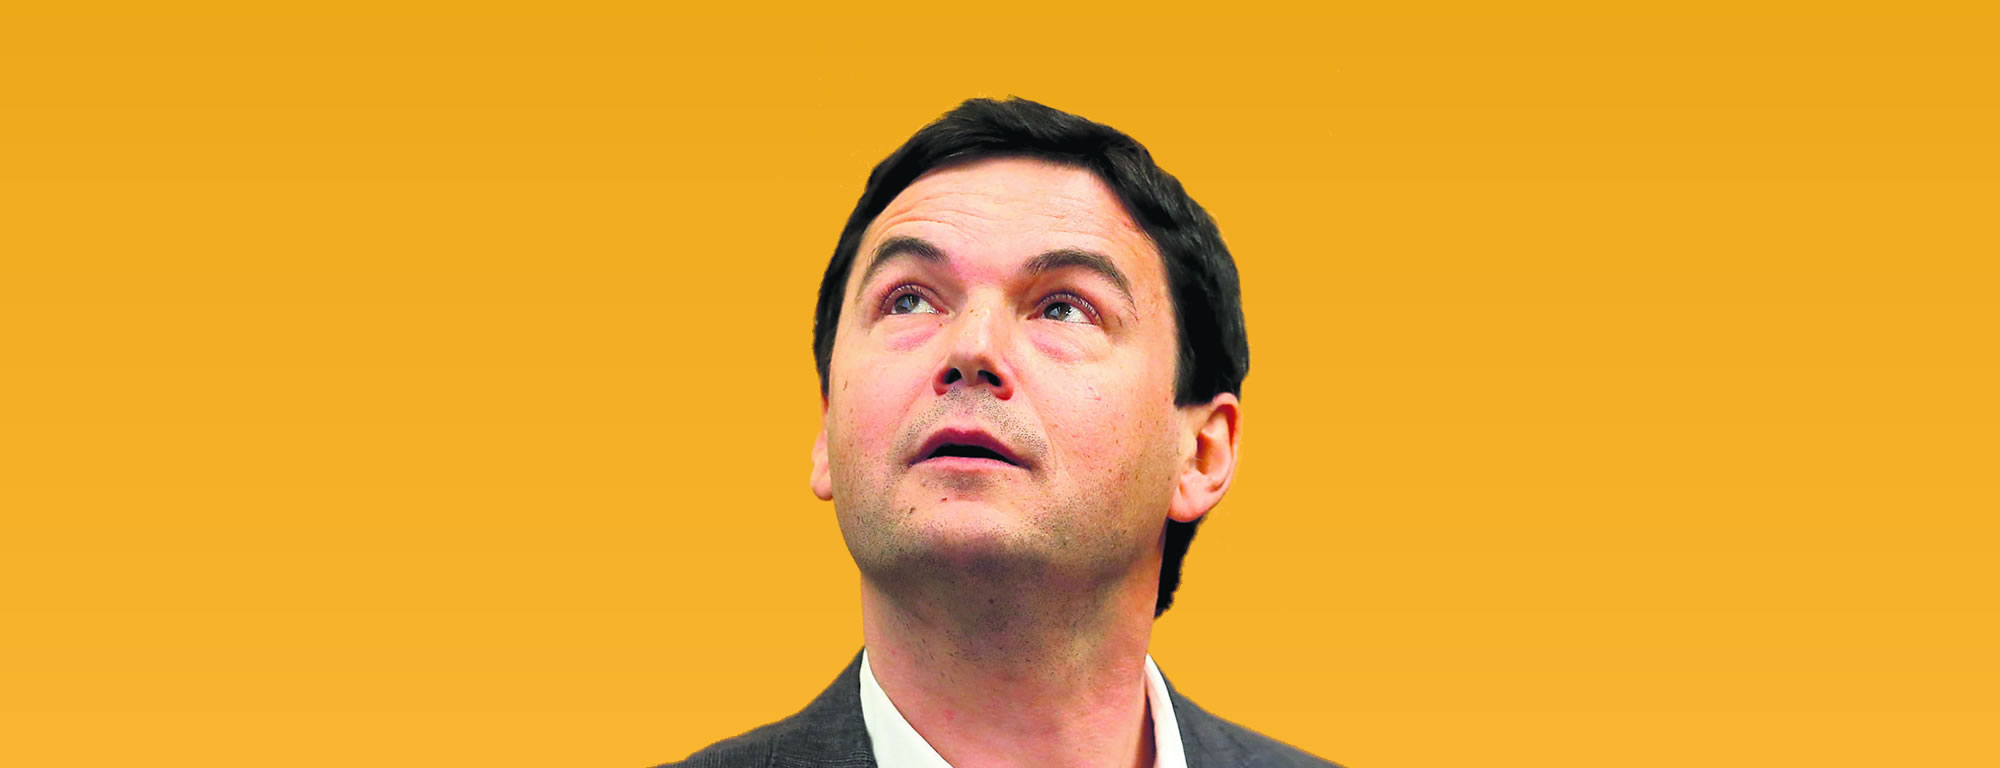 El Capital Libro Piketty En El Laberinto Del Capital Ideas El Comercio